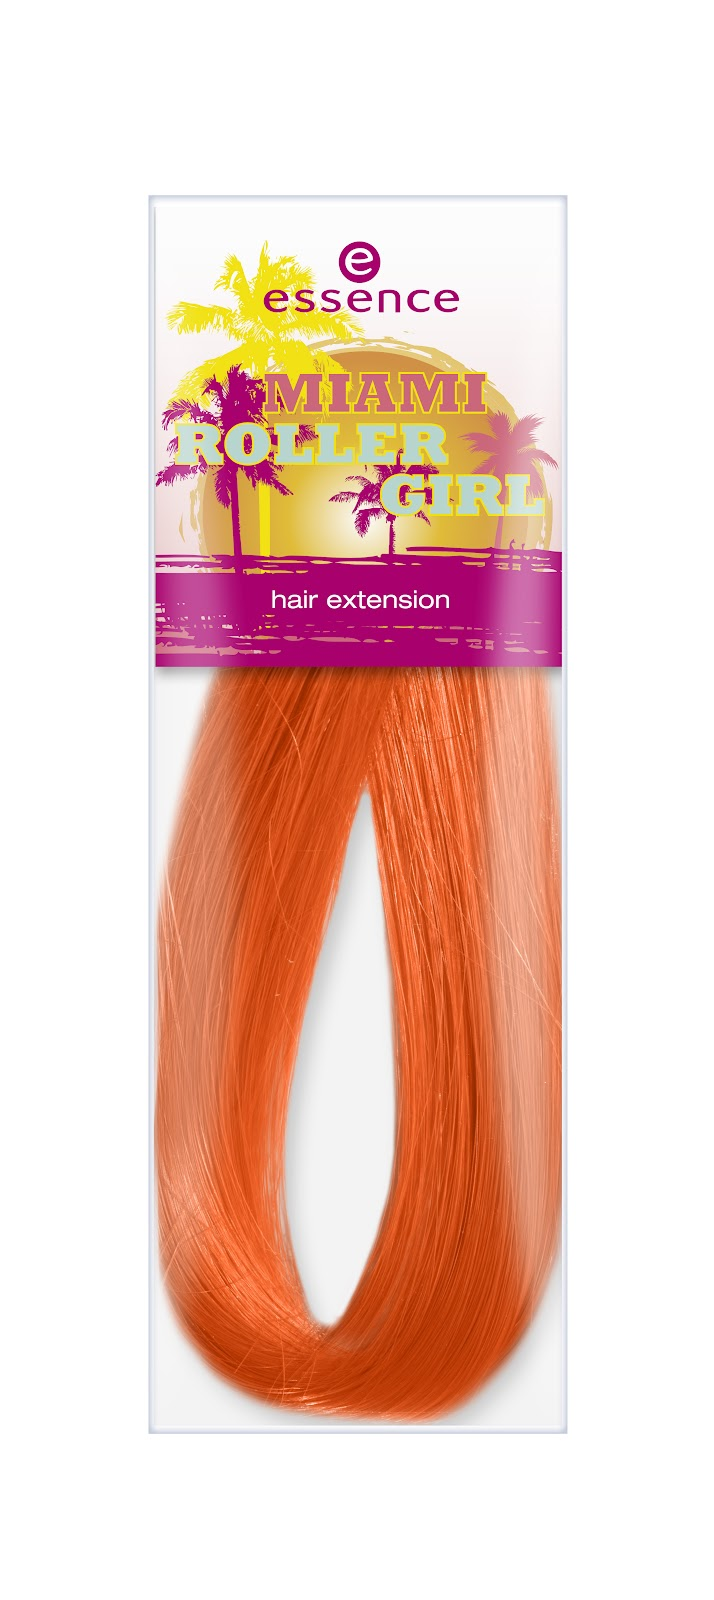 essence miami roller girl hair extension